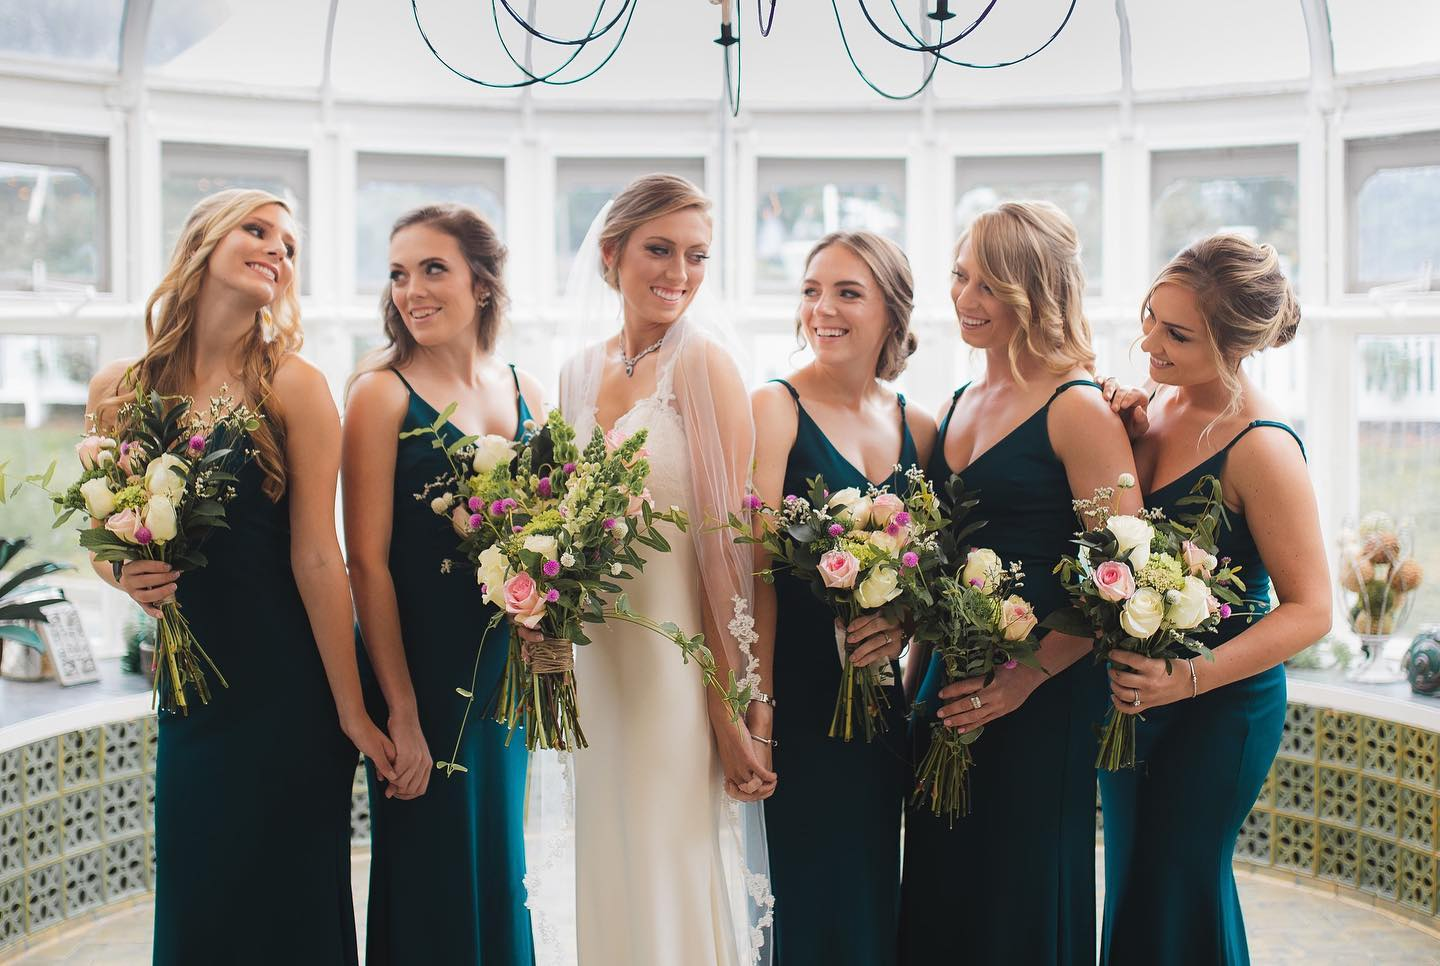 wedding-party-bride-bridesmainds-in-conservatory